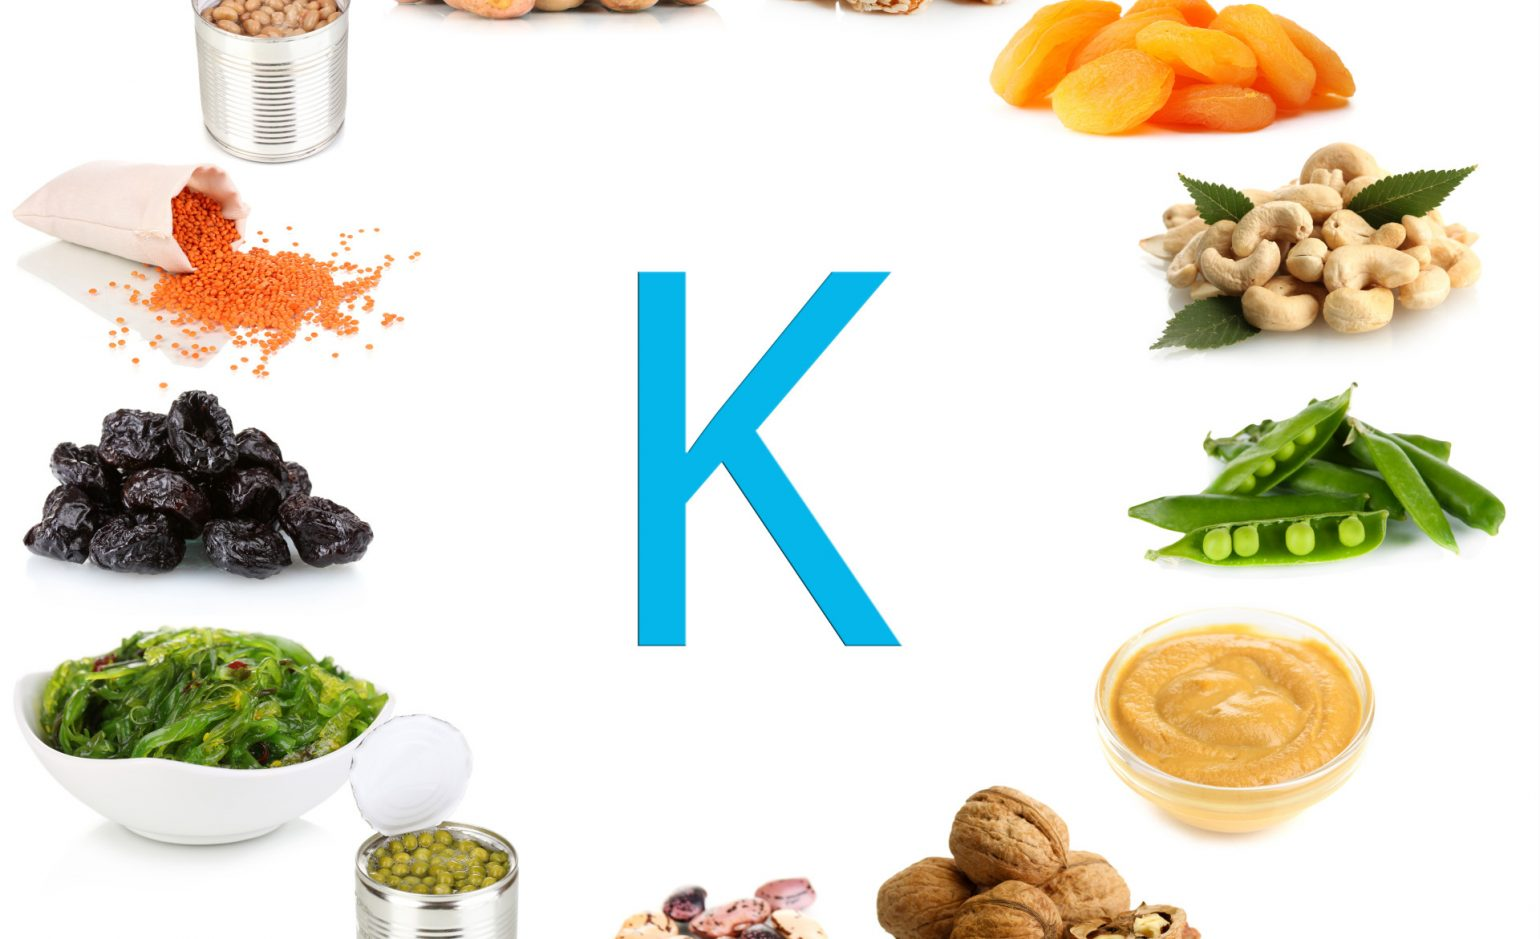 Eating Potassium Rich Foods To Counter Sodium